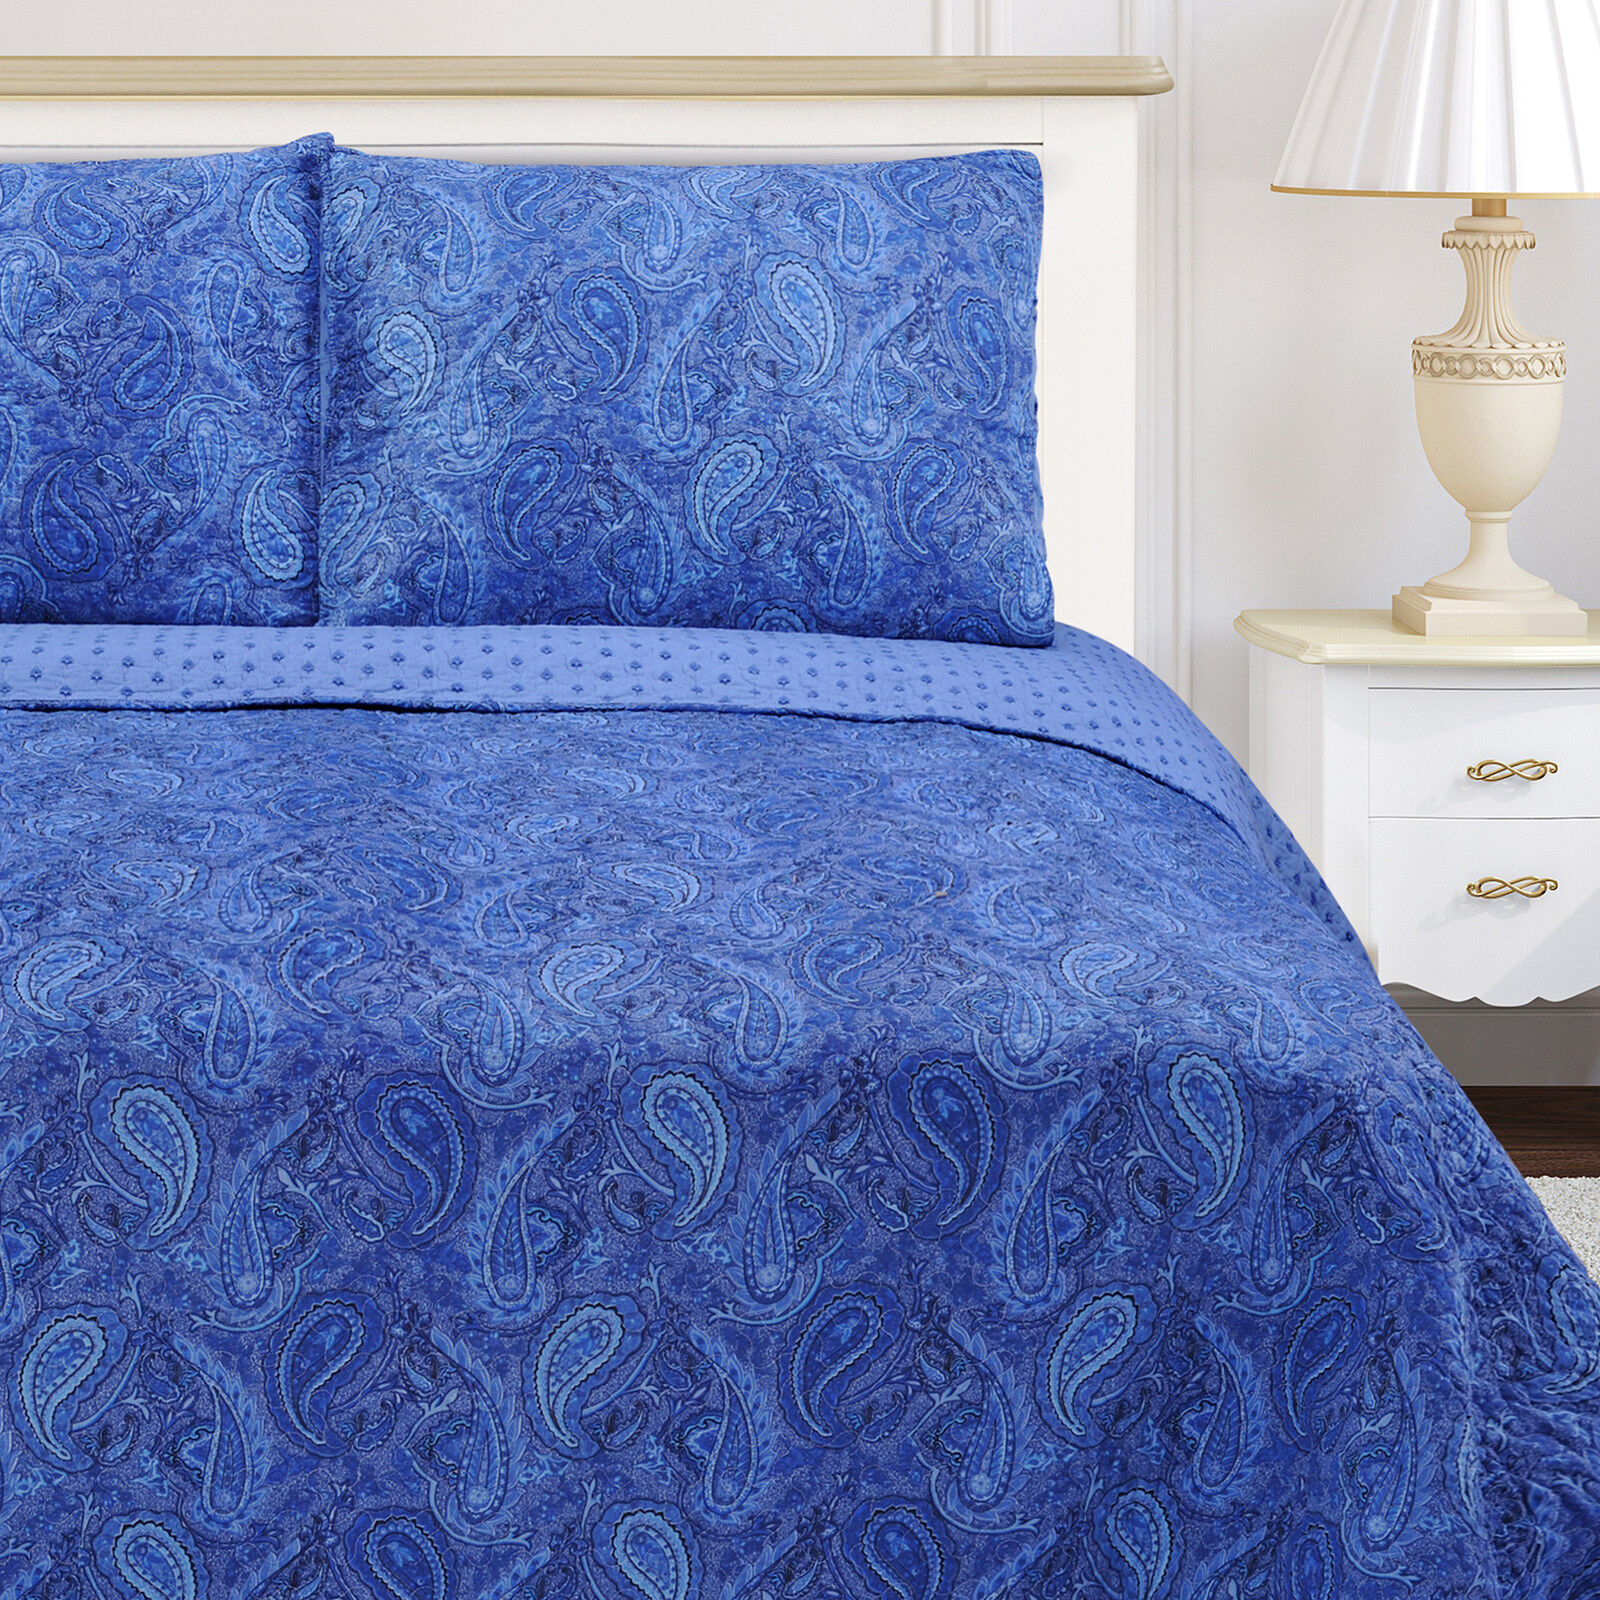 100% COTTON MgoldCCAN PAISLEY 3PC QUILT SET-NAVY blueE